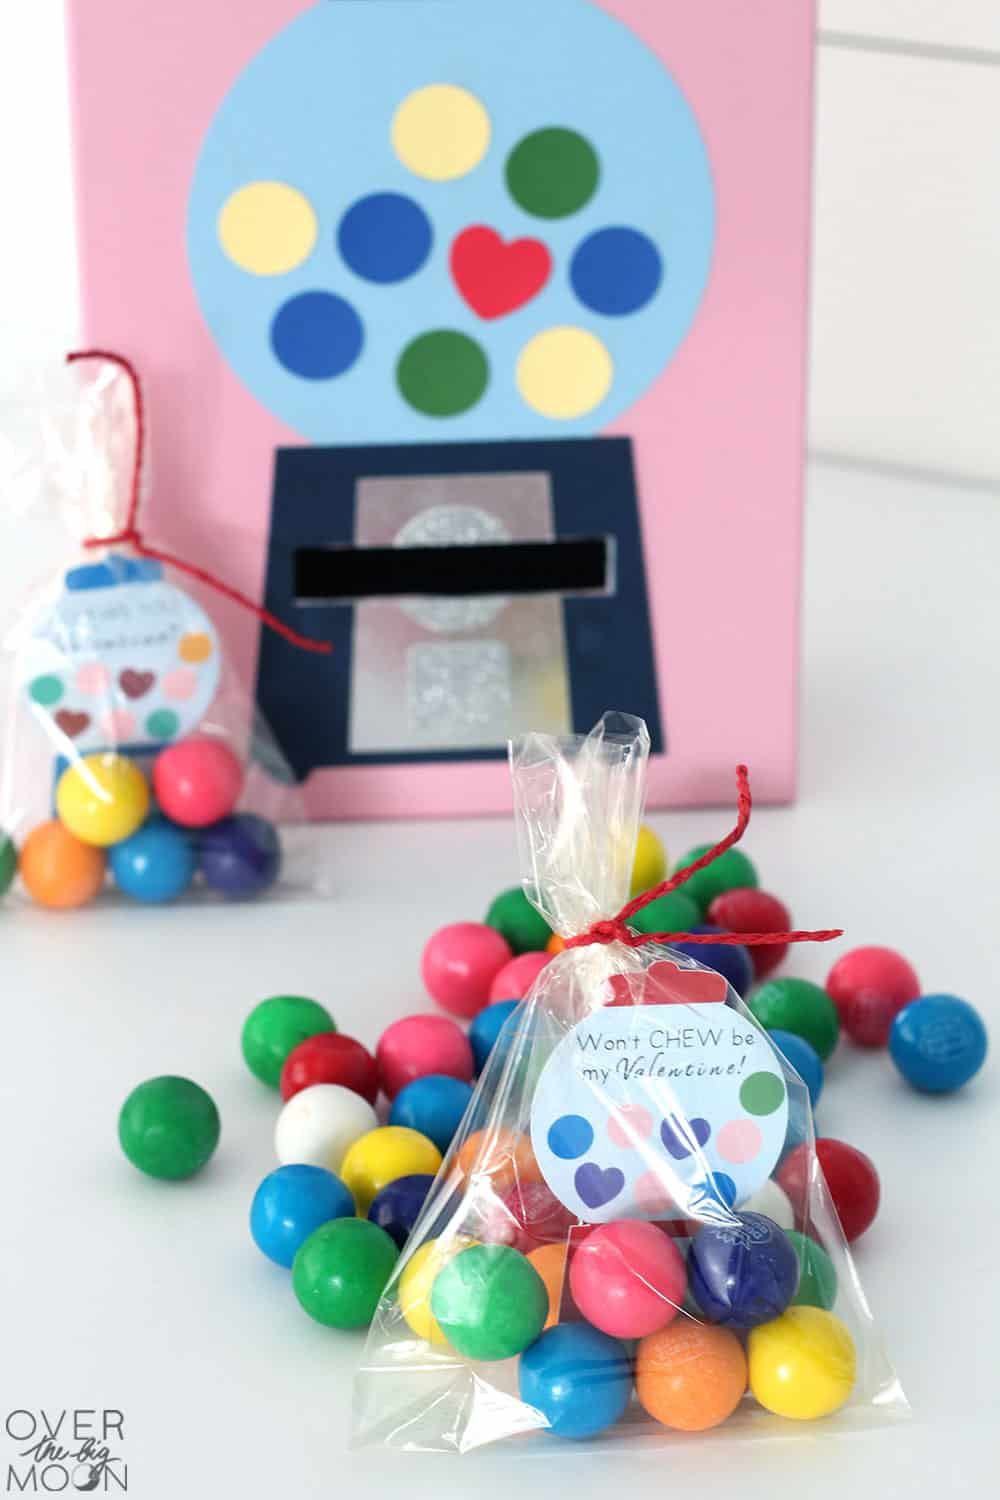 Gumball Valentine's Day Box and Valentine's from overthebigmoon.com!